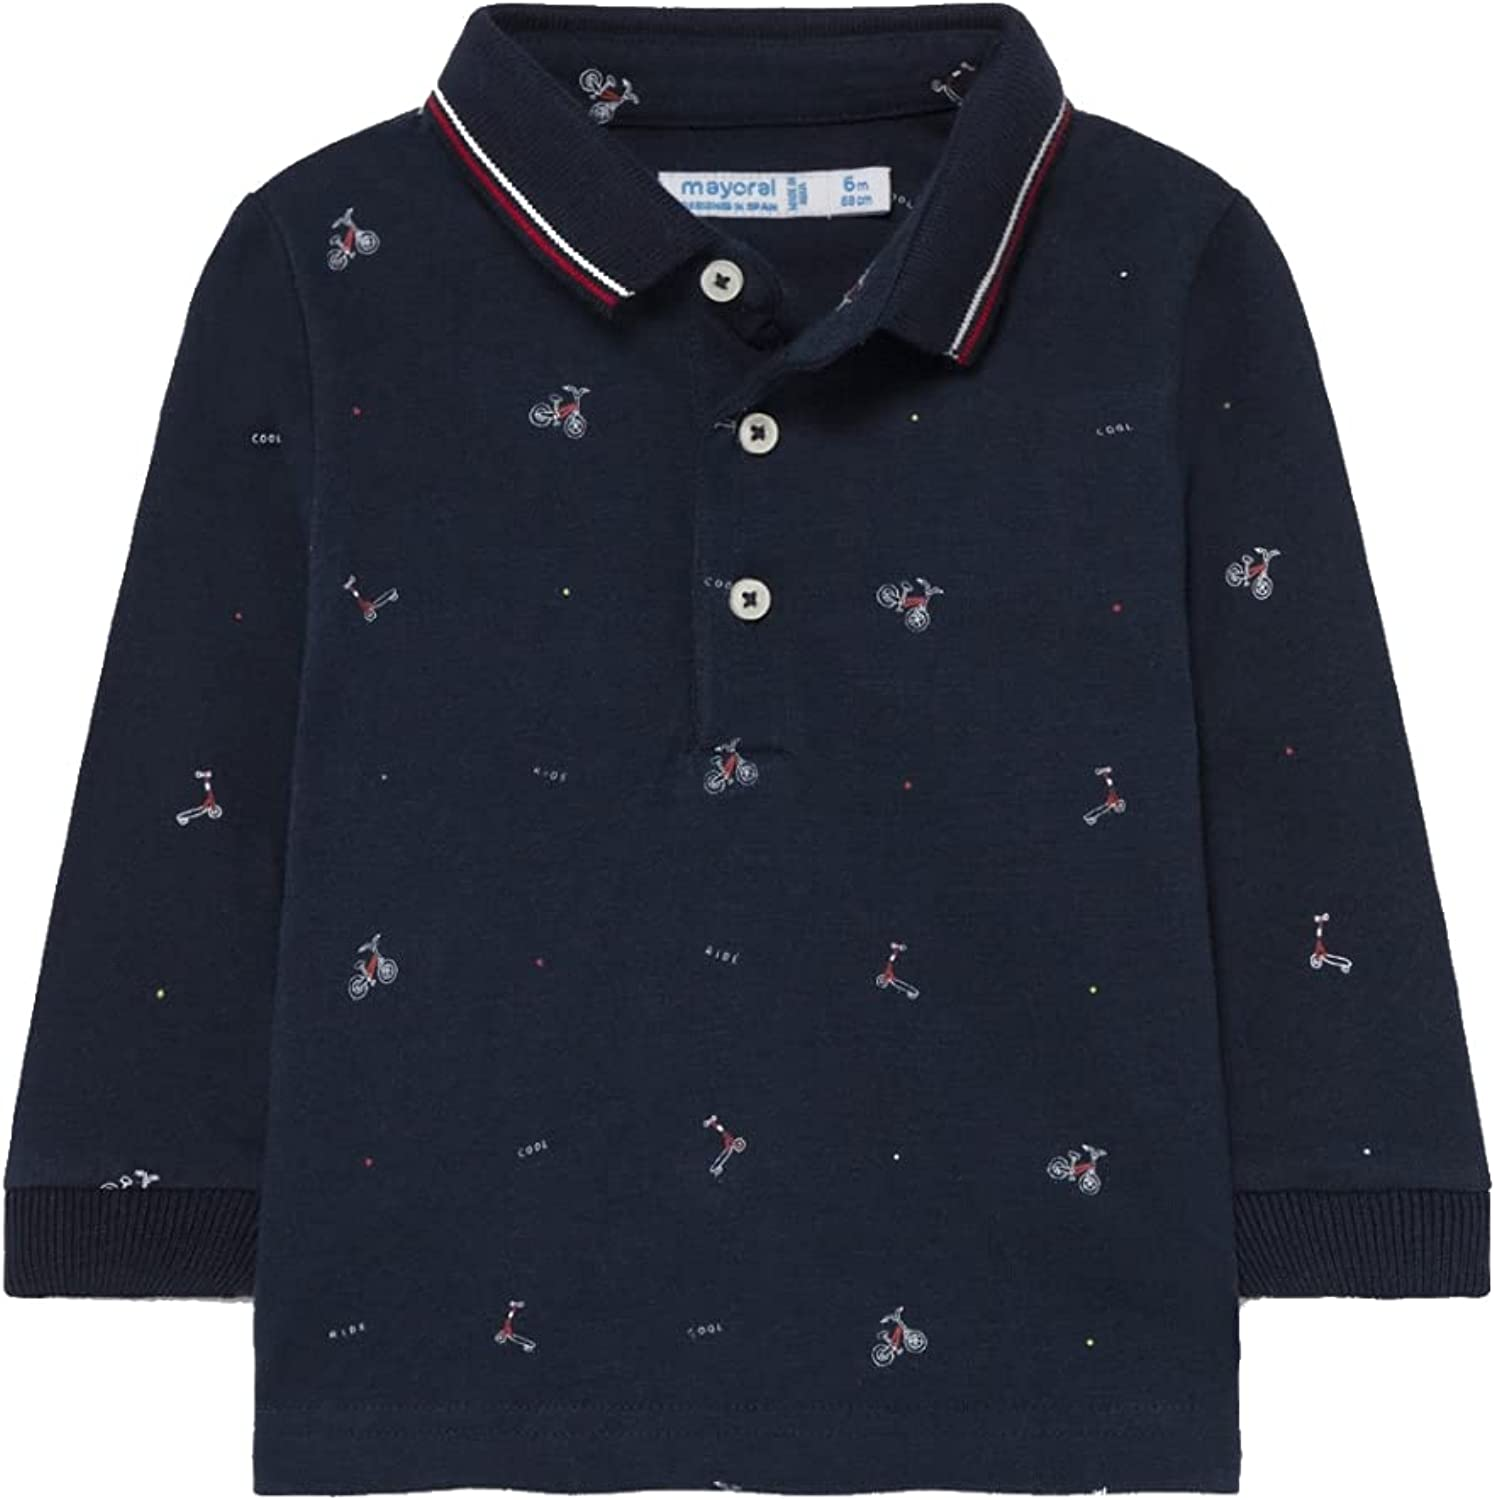 New product Mayoral free - Printed Polo Blue Baby-Boys 2142 for